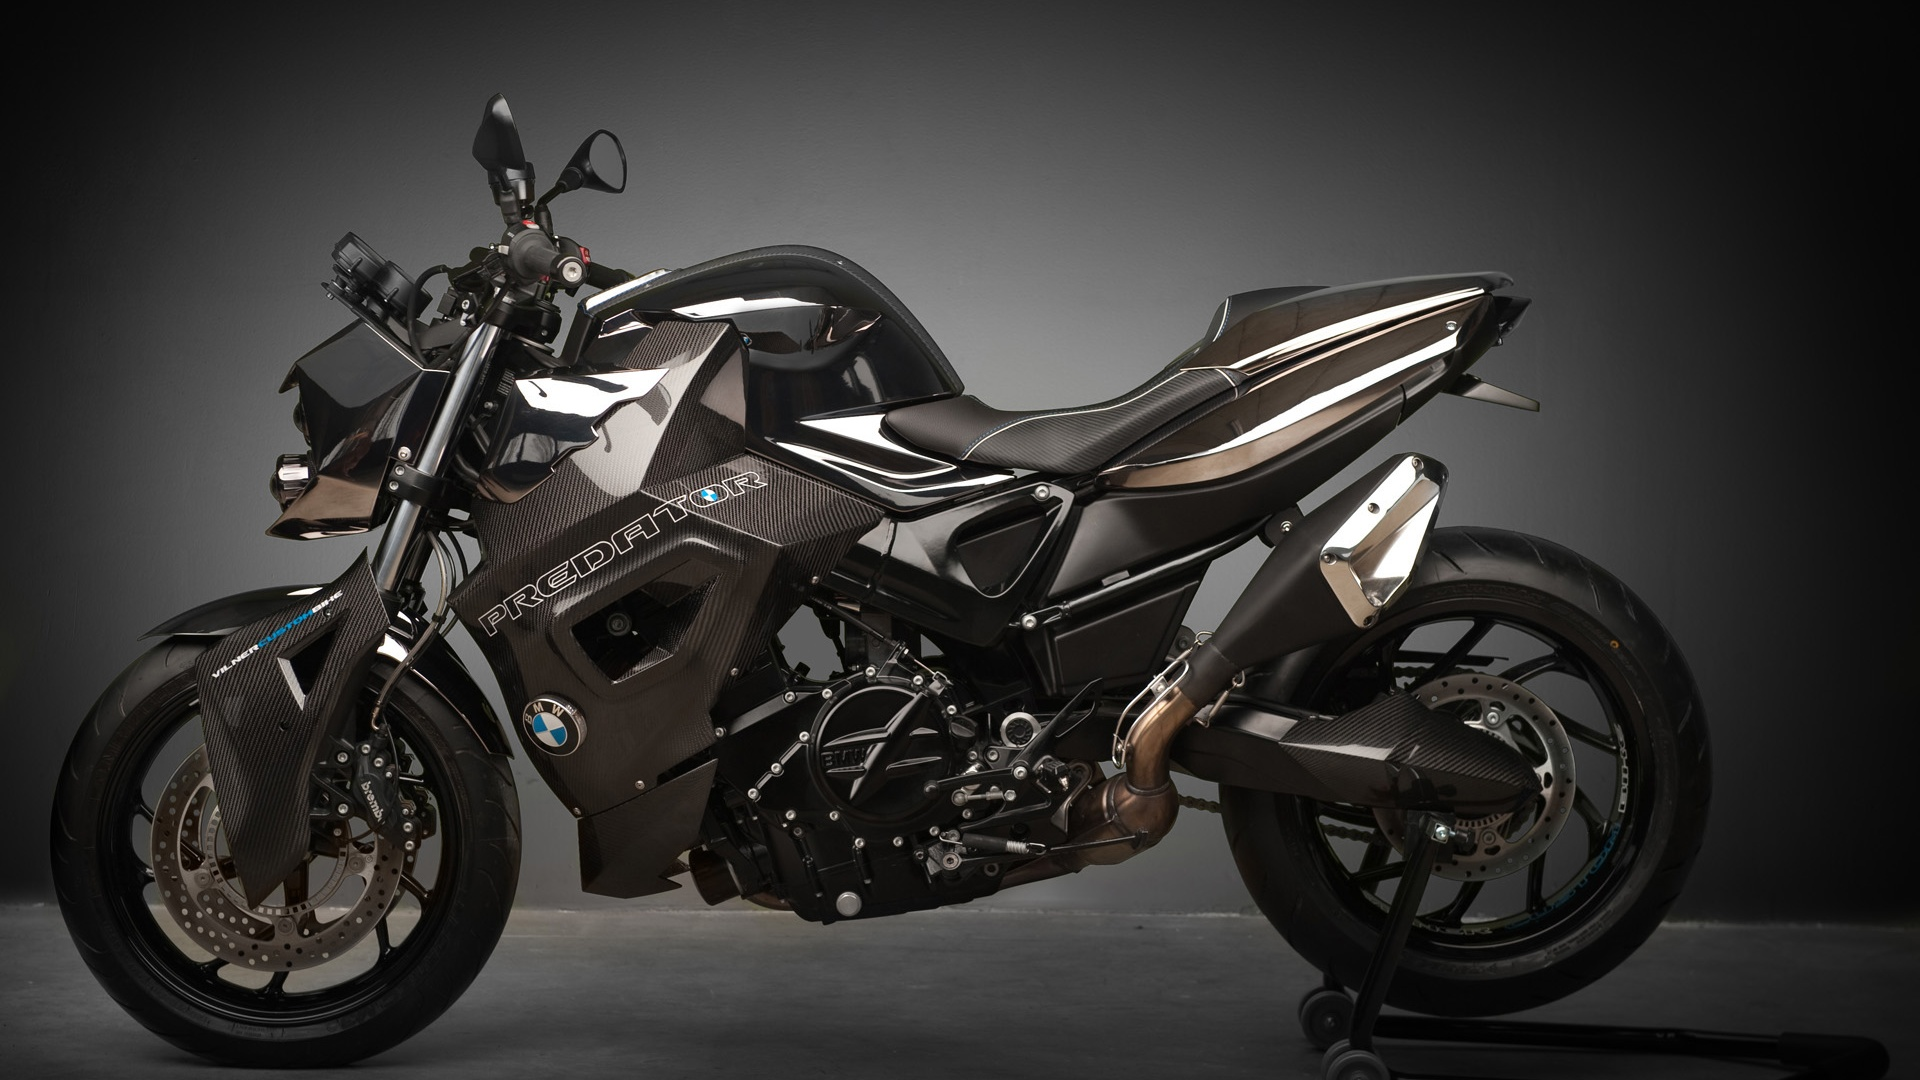 F800 R Predator Static Gray Background desktop PC and Mac wallpaper 1920x1080